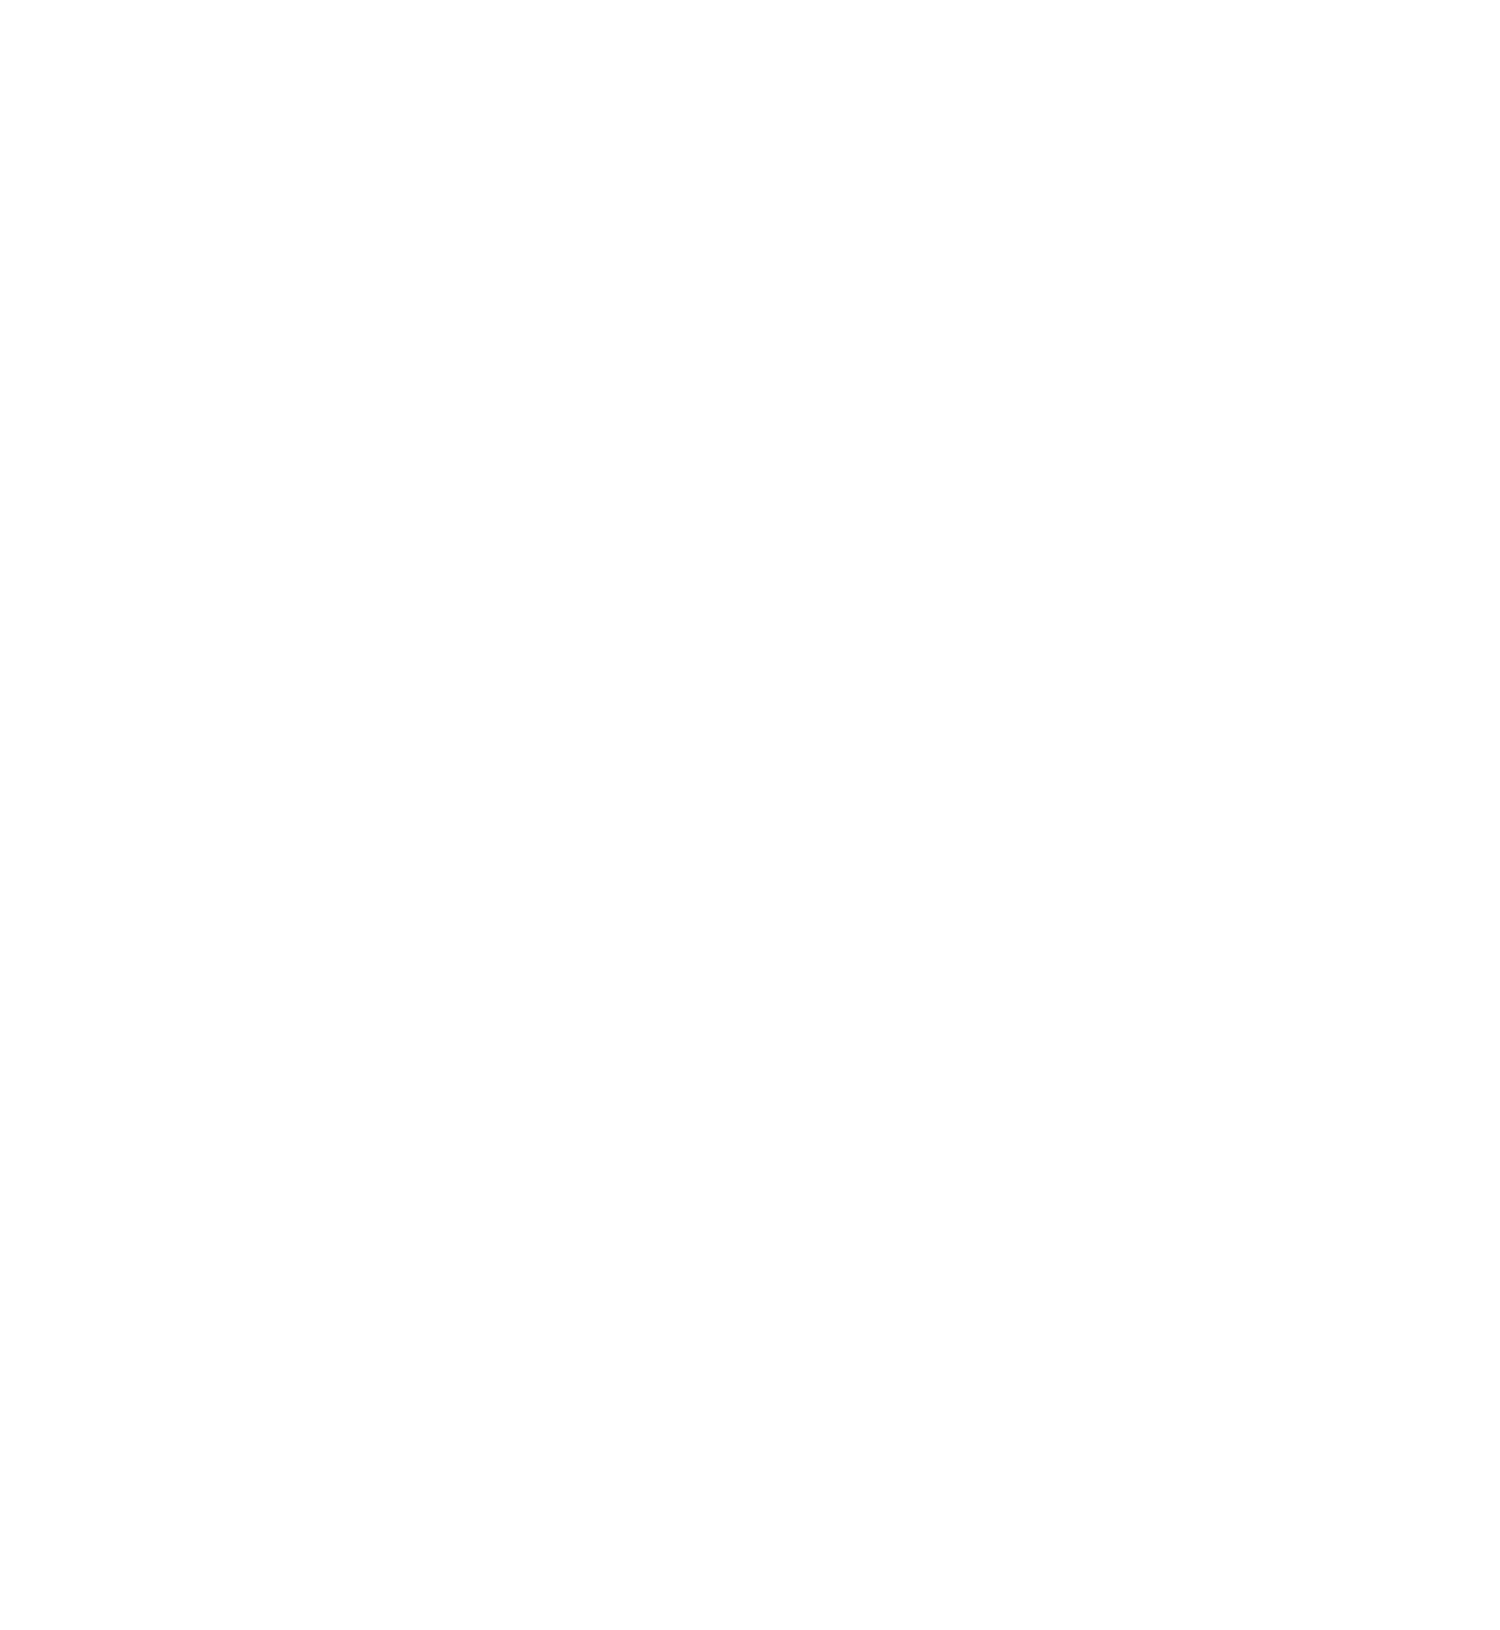 Massachusetts Afterschool Partnership